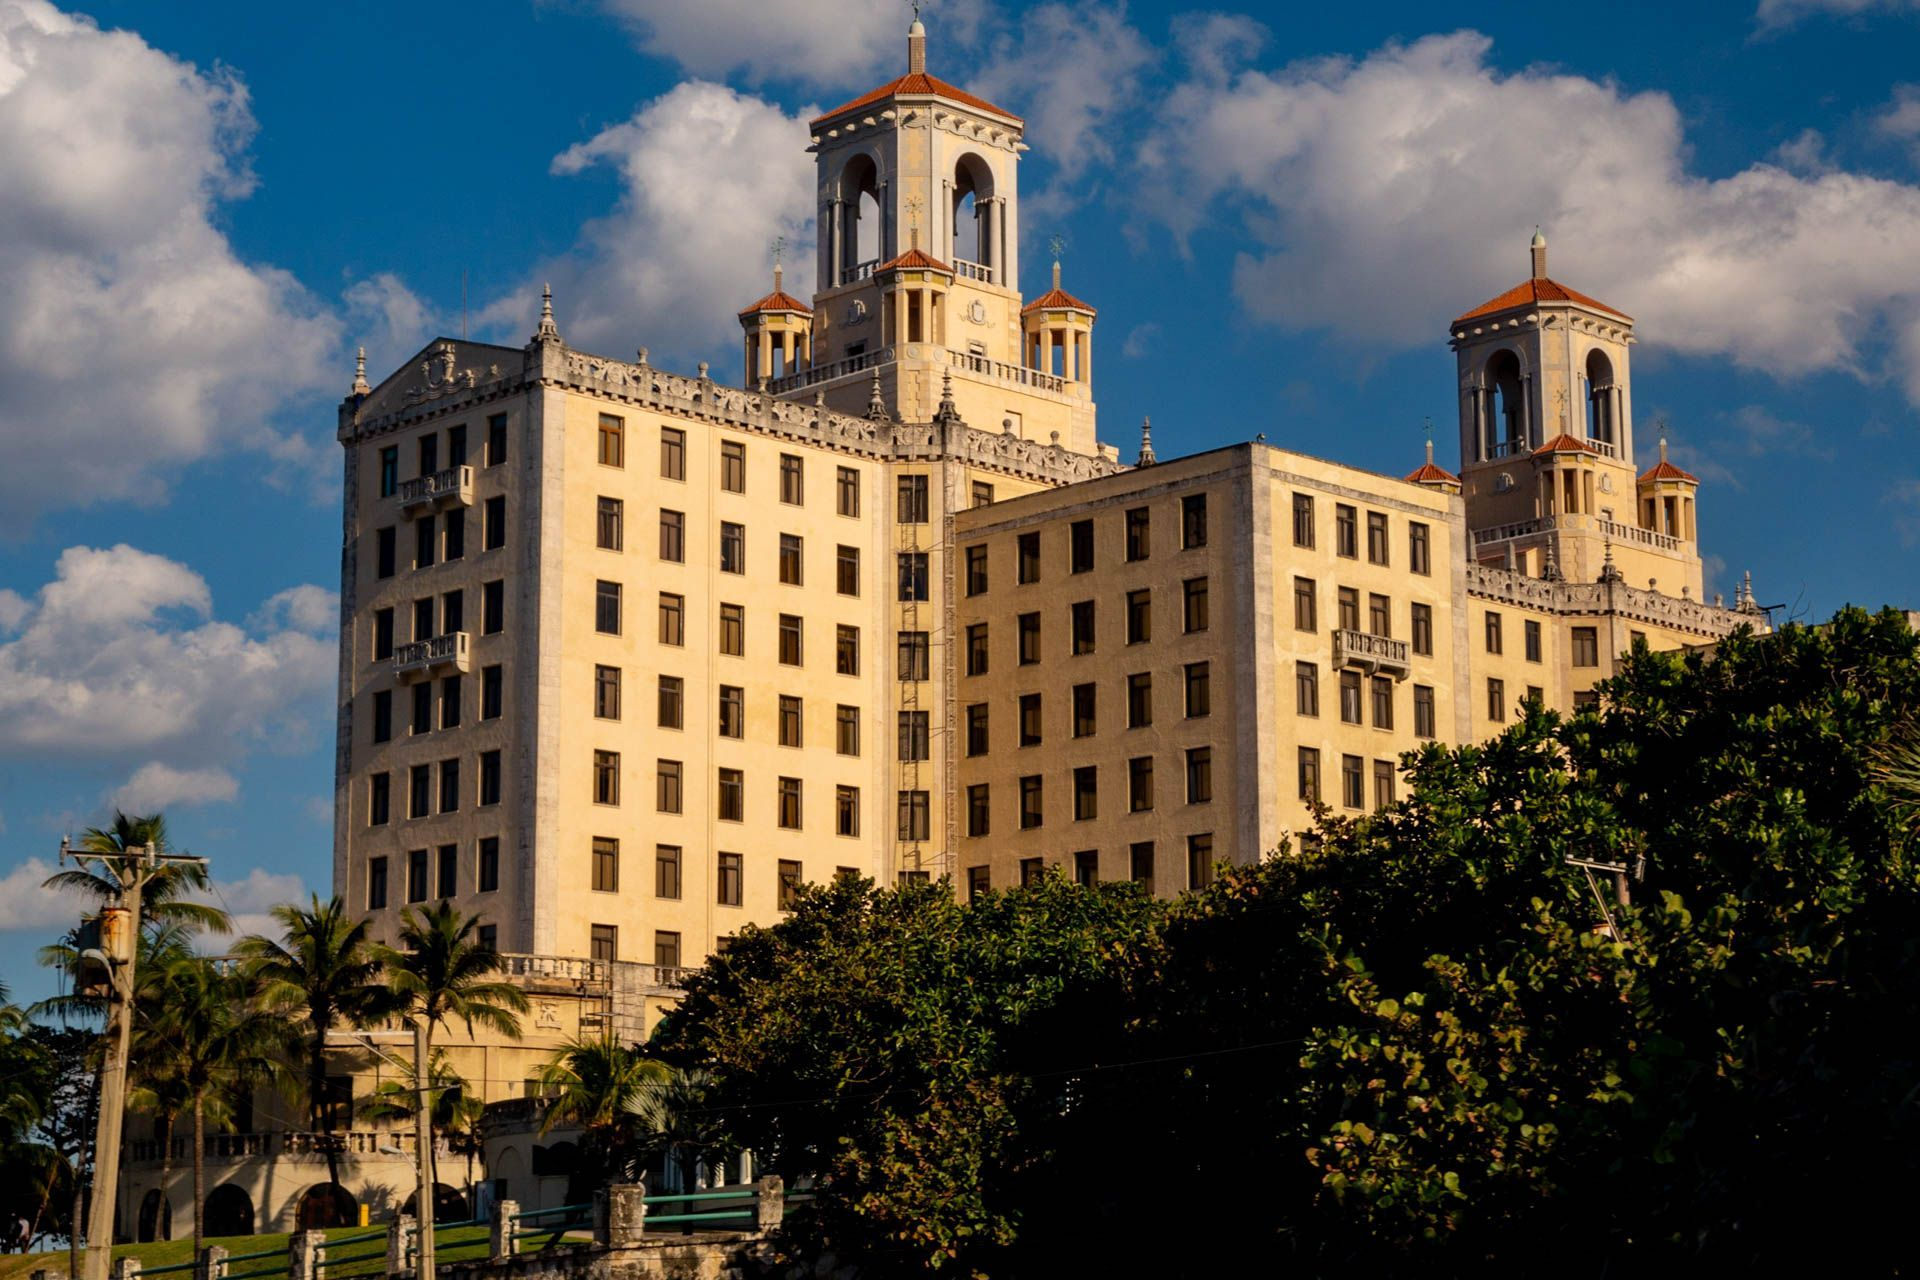 The famous hotel where all the gangsters, musicians, millionairs & political people stayed during the booming days of Cuba